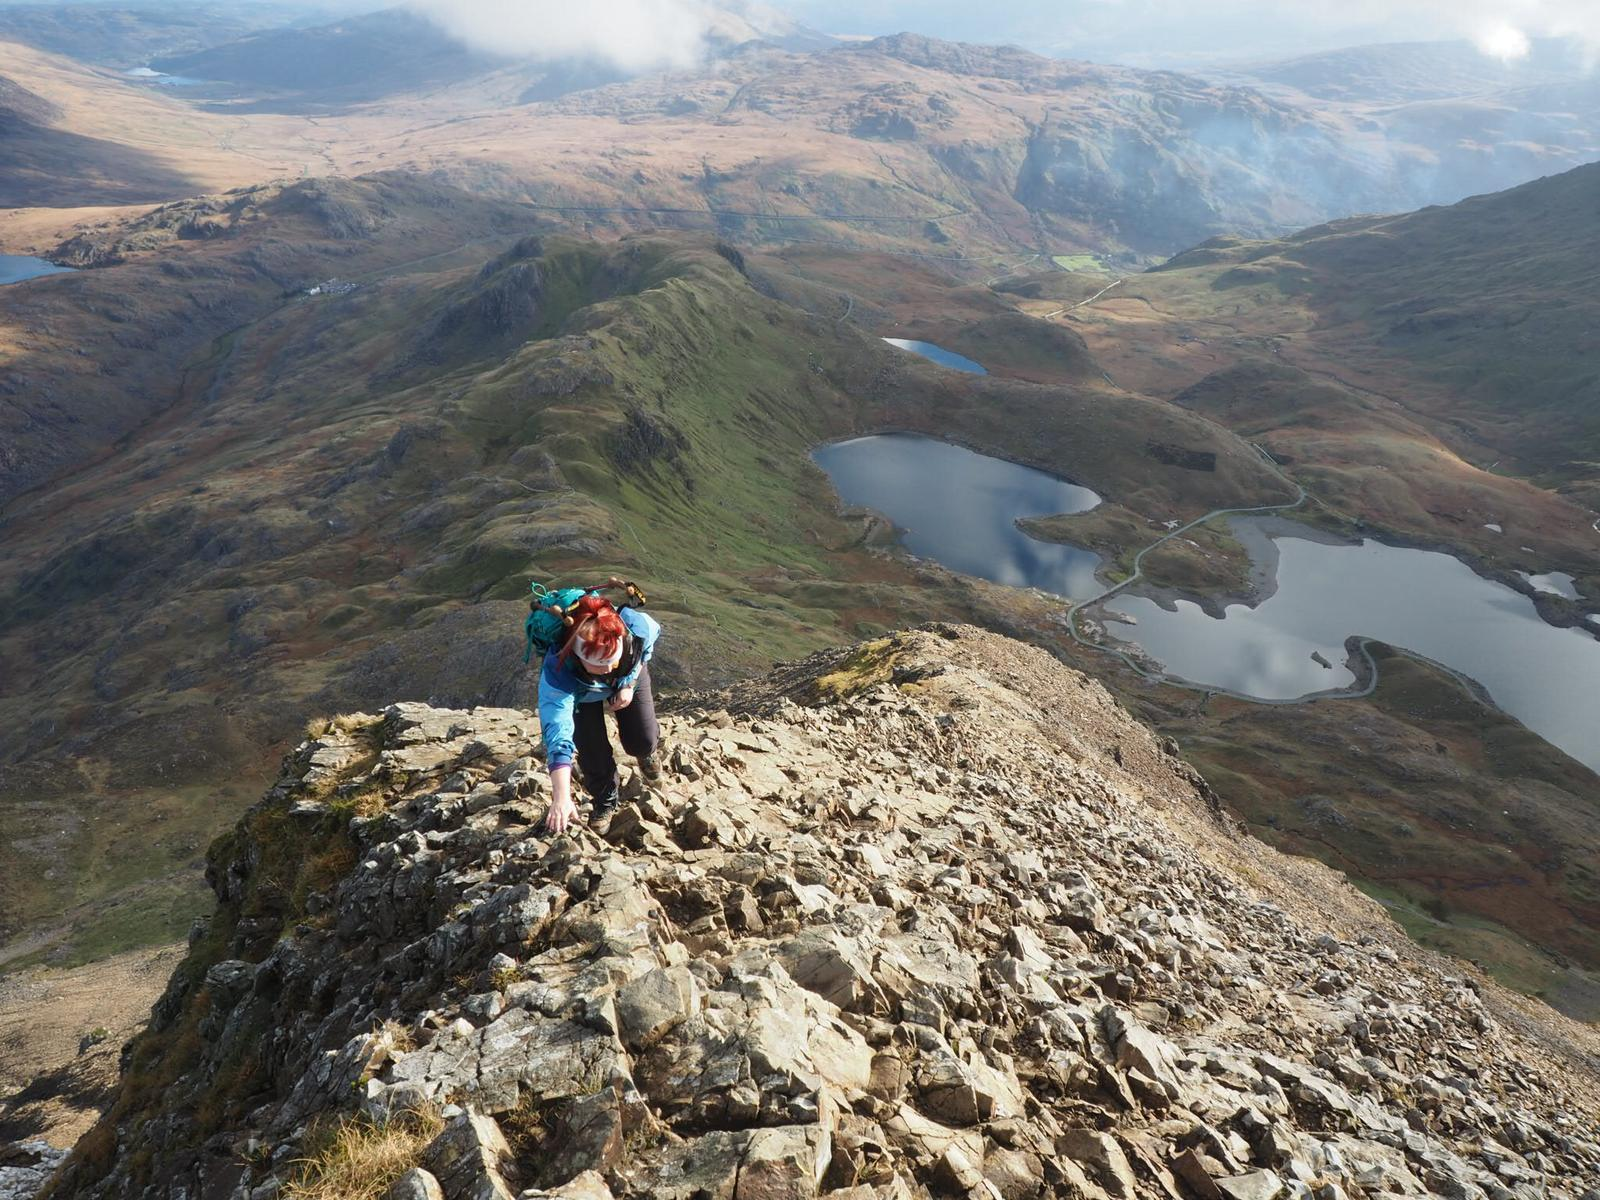 Country diary: British hills hint at alpine levels of drama